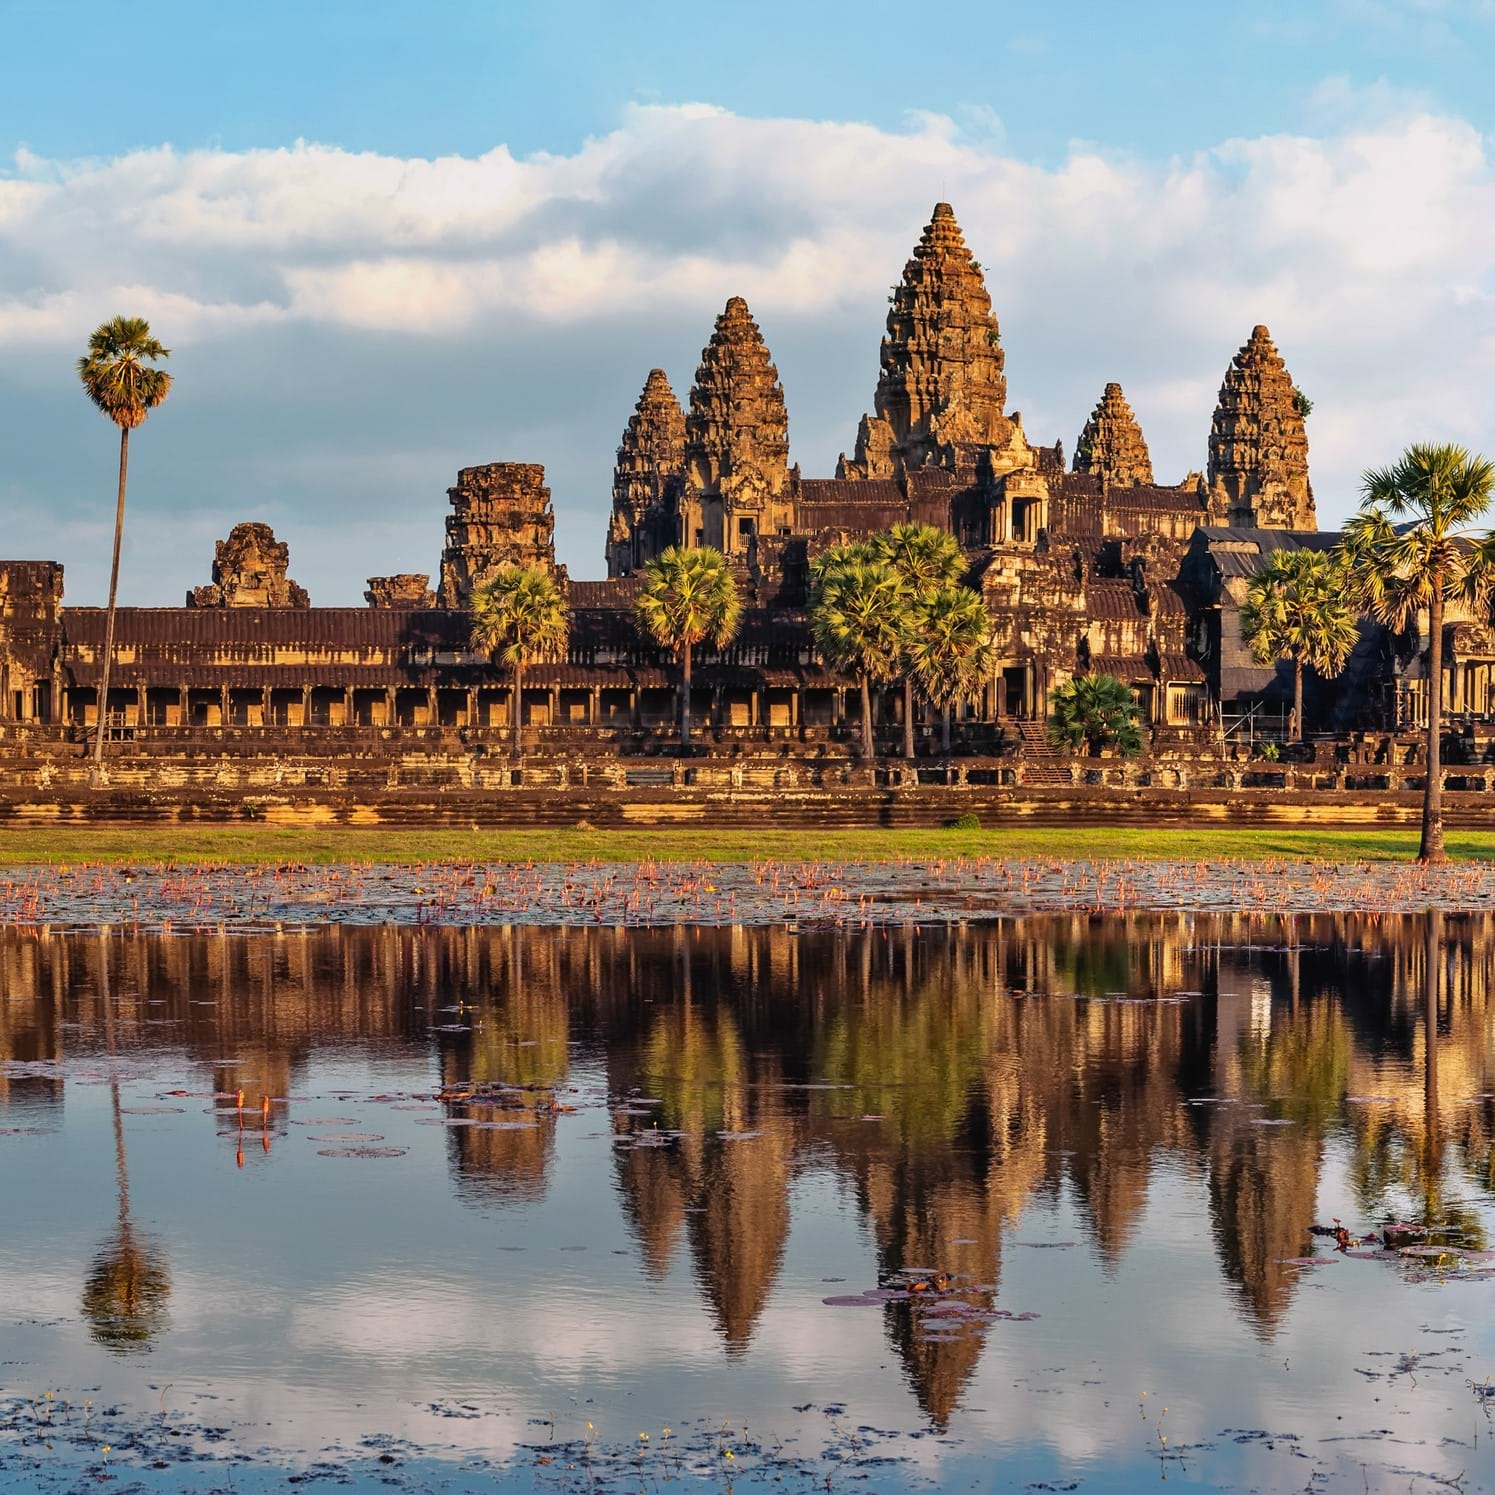 Angkor Wat Cambodia finish line Cycle Vietnam to Cambodia 2019 Dream Challenges